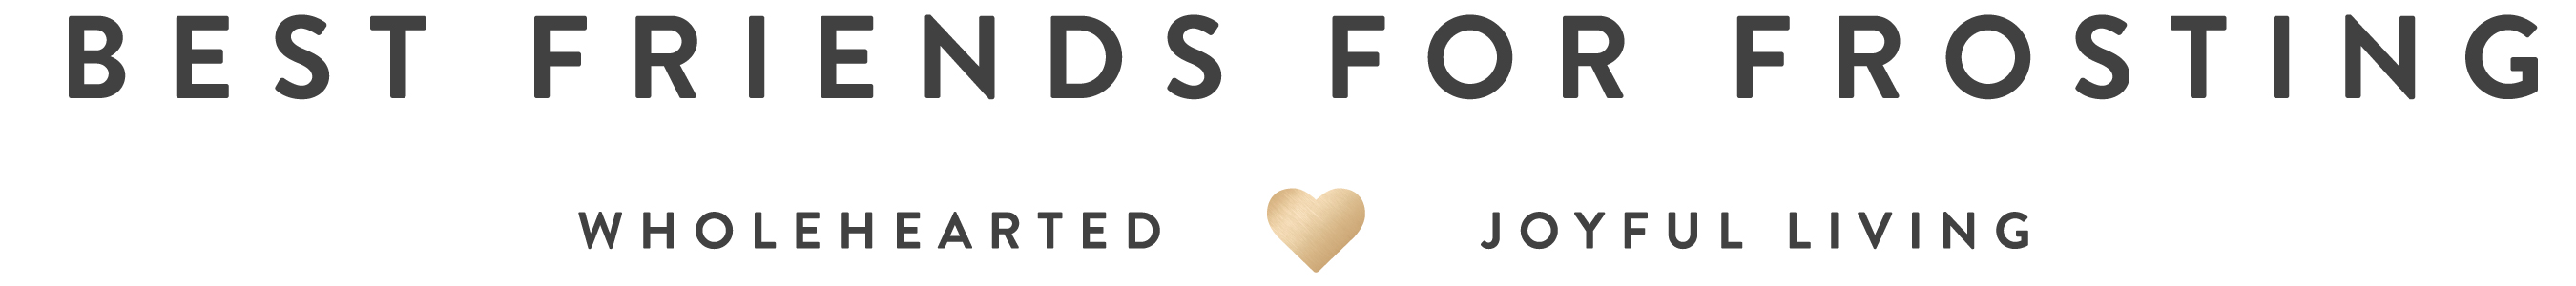 Best Friends for Frosting